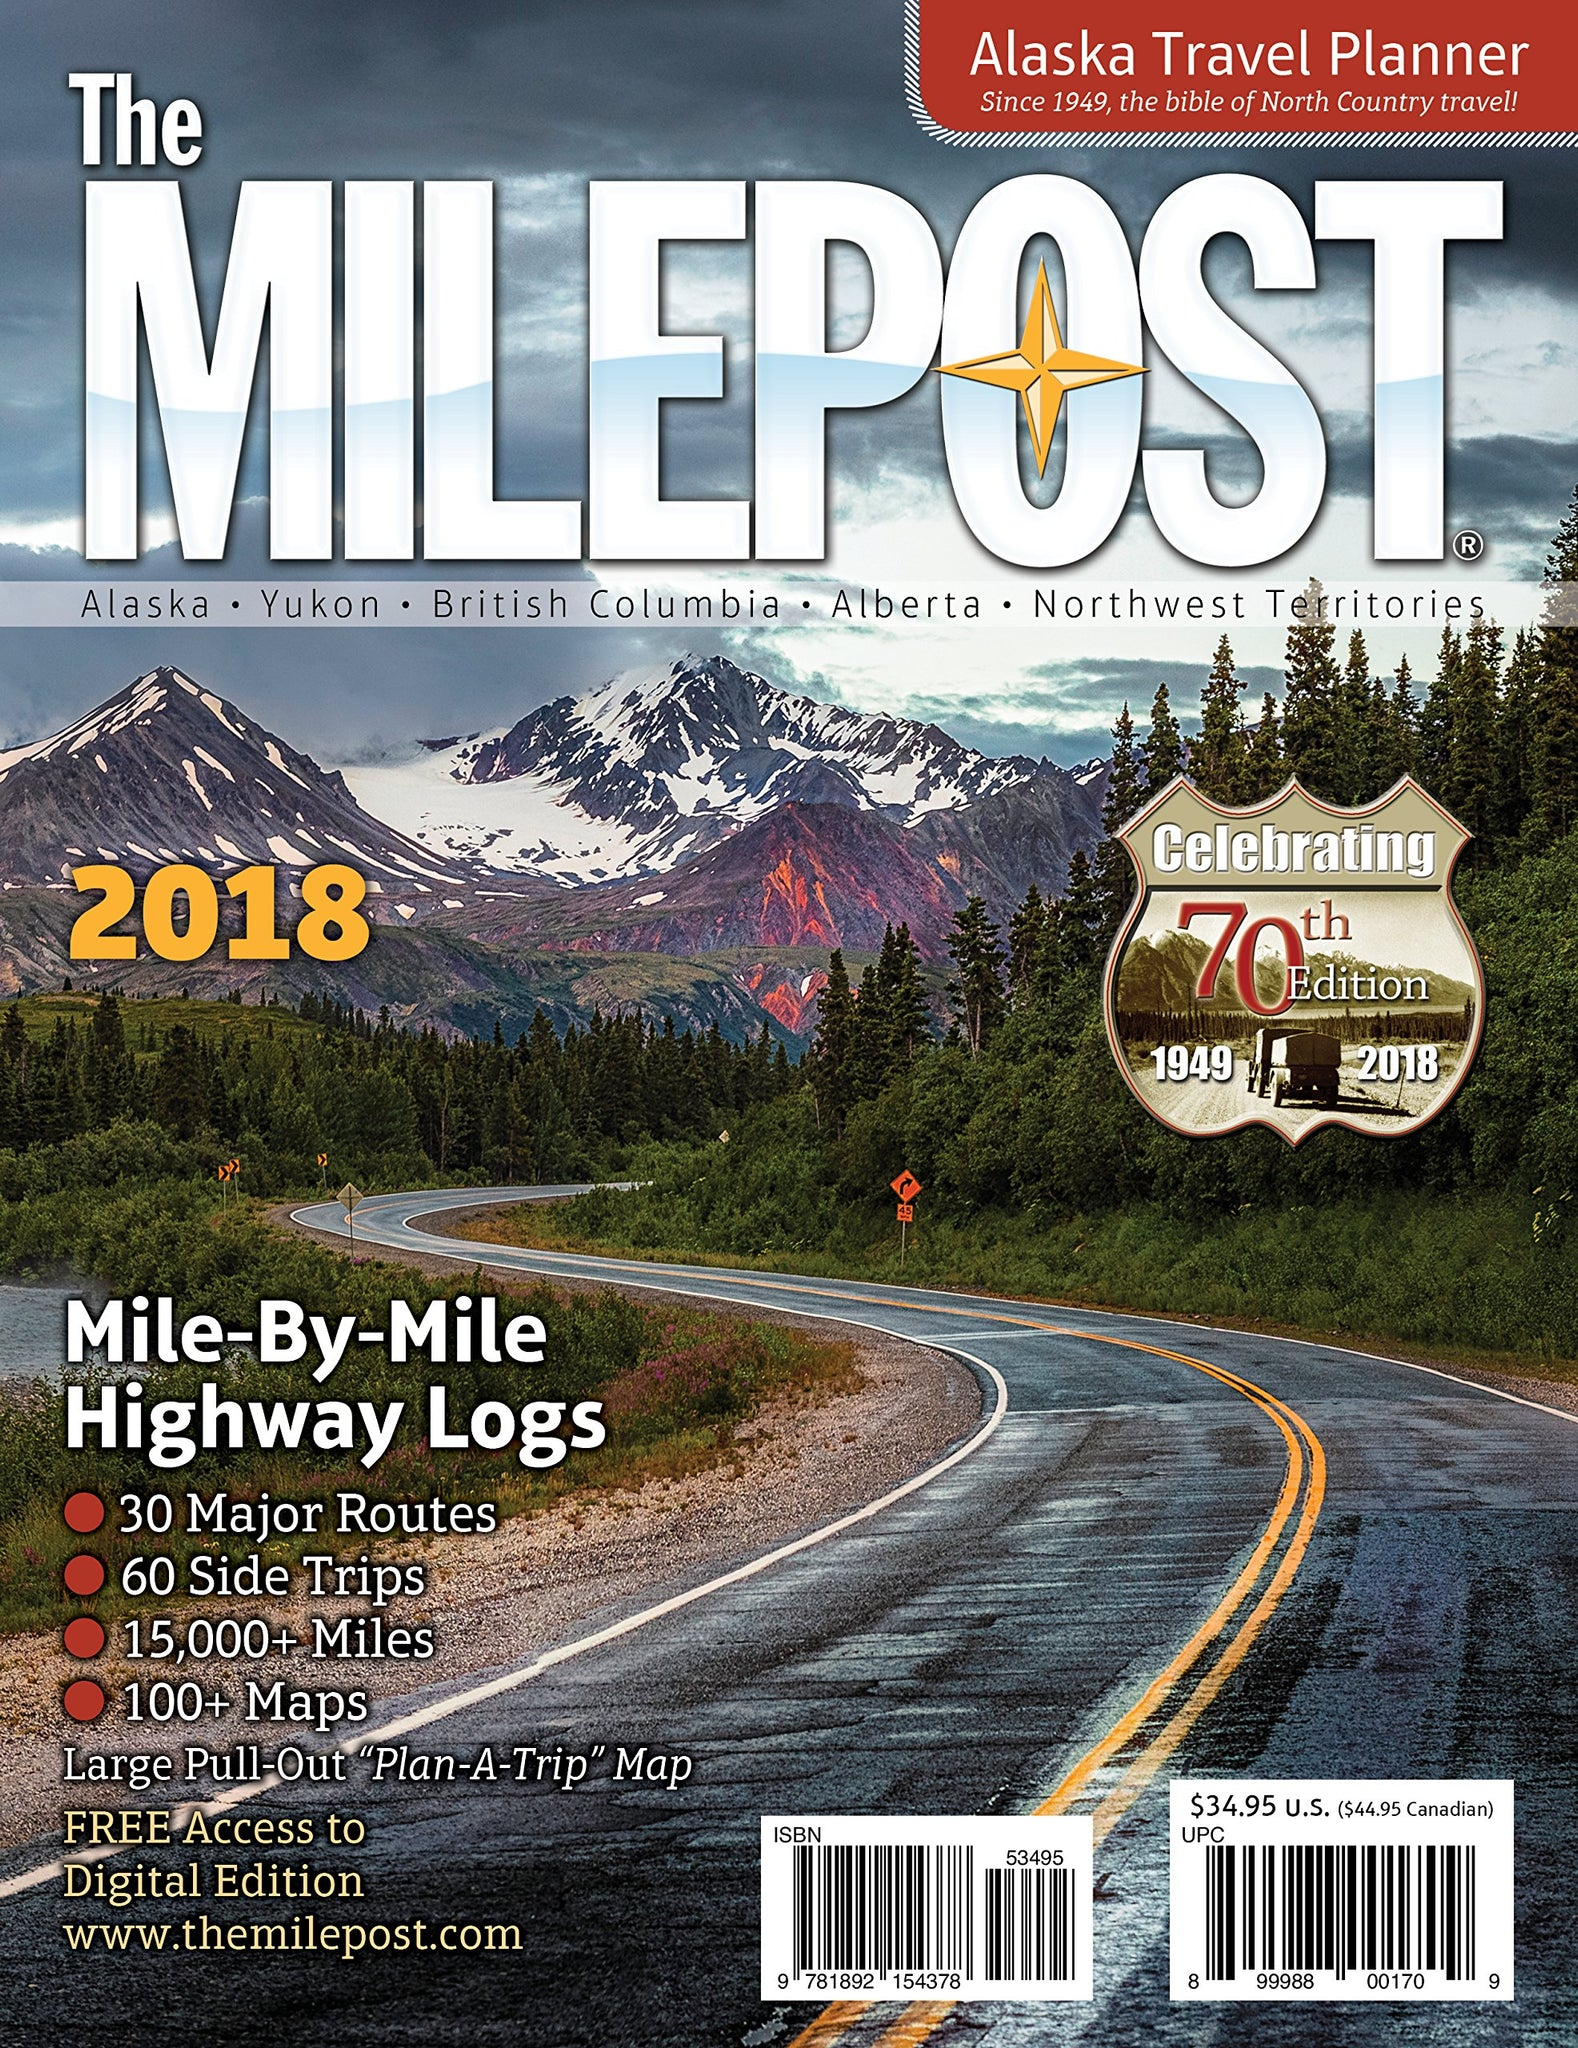 Travel Alaska with The Milepost - the Ultimate Alaskan Guidebook